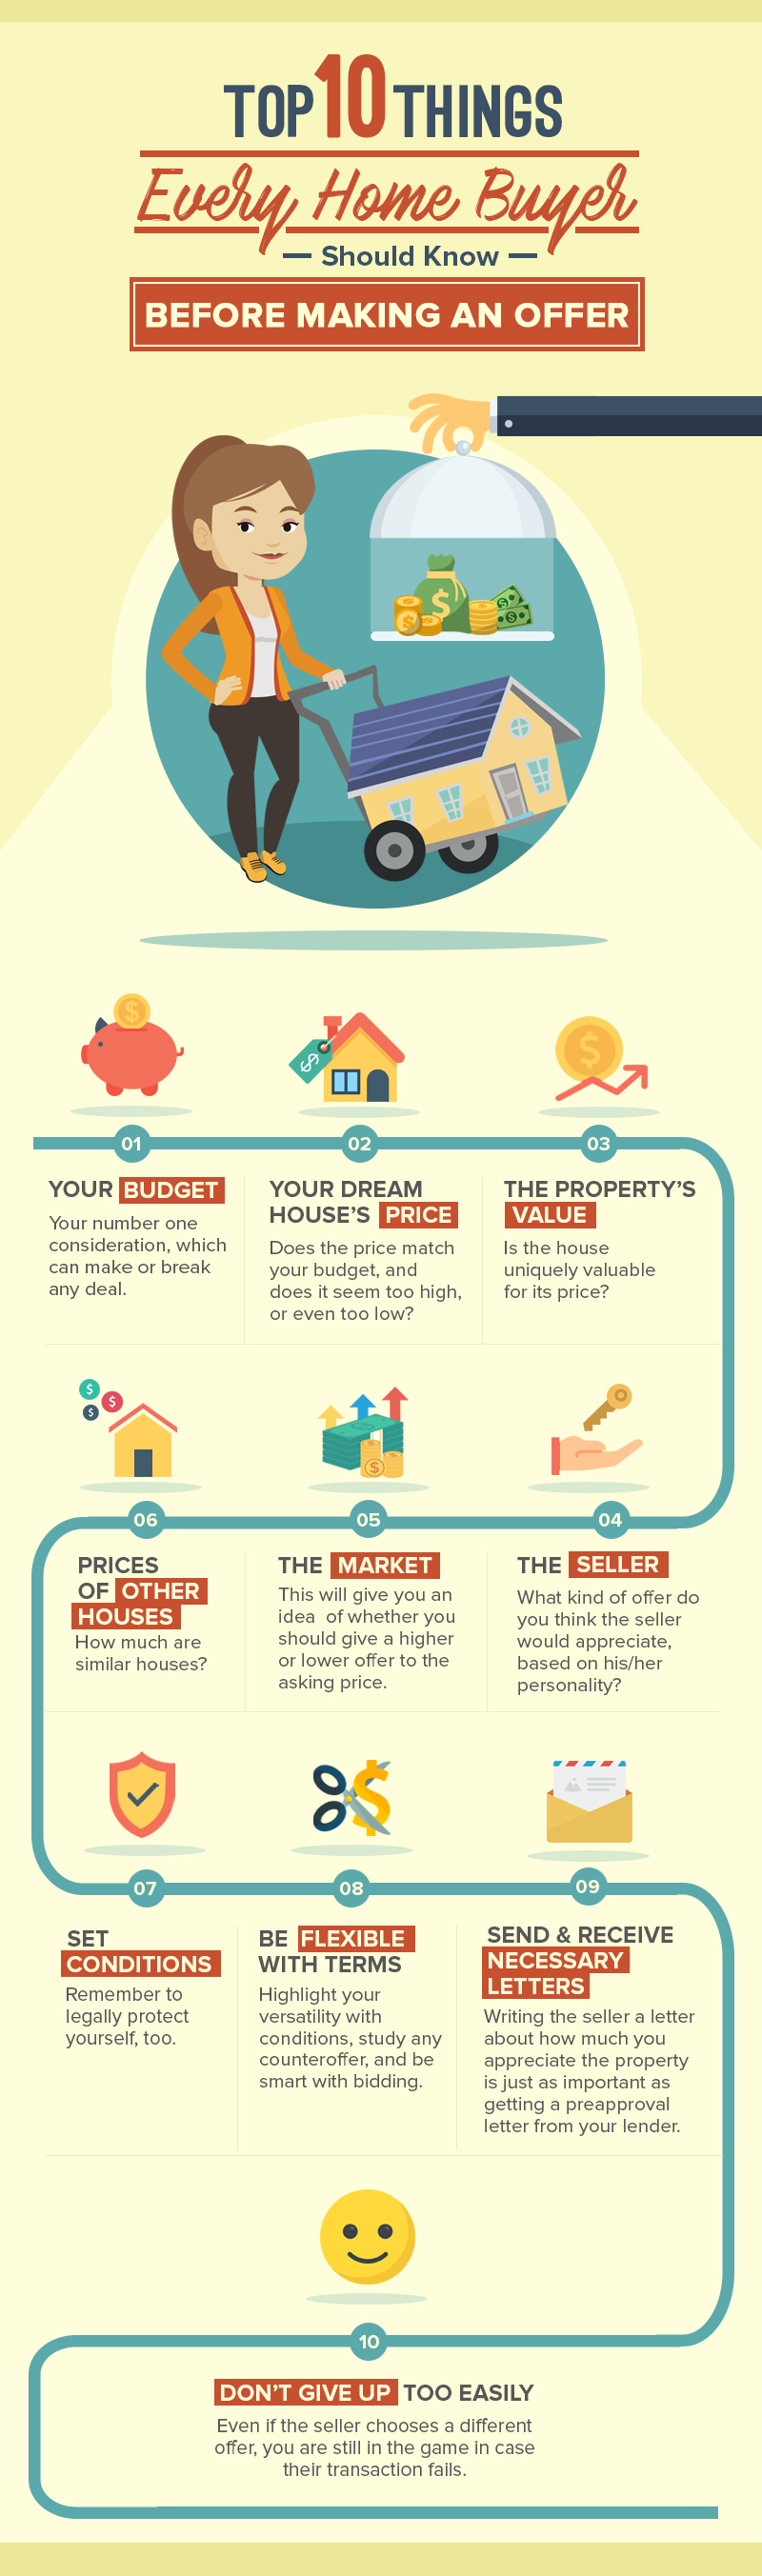 Top 10 Things Every Home Buyer Should Know About Making An Offer.jpg